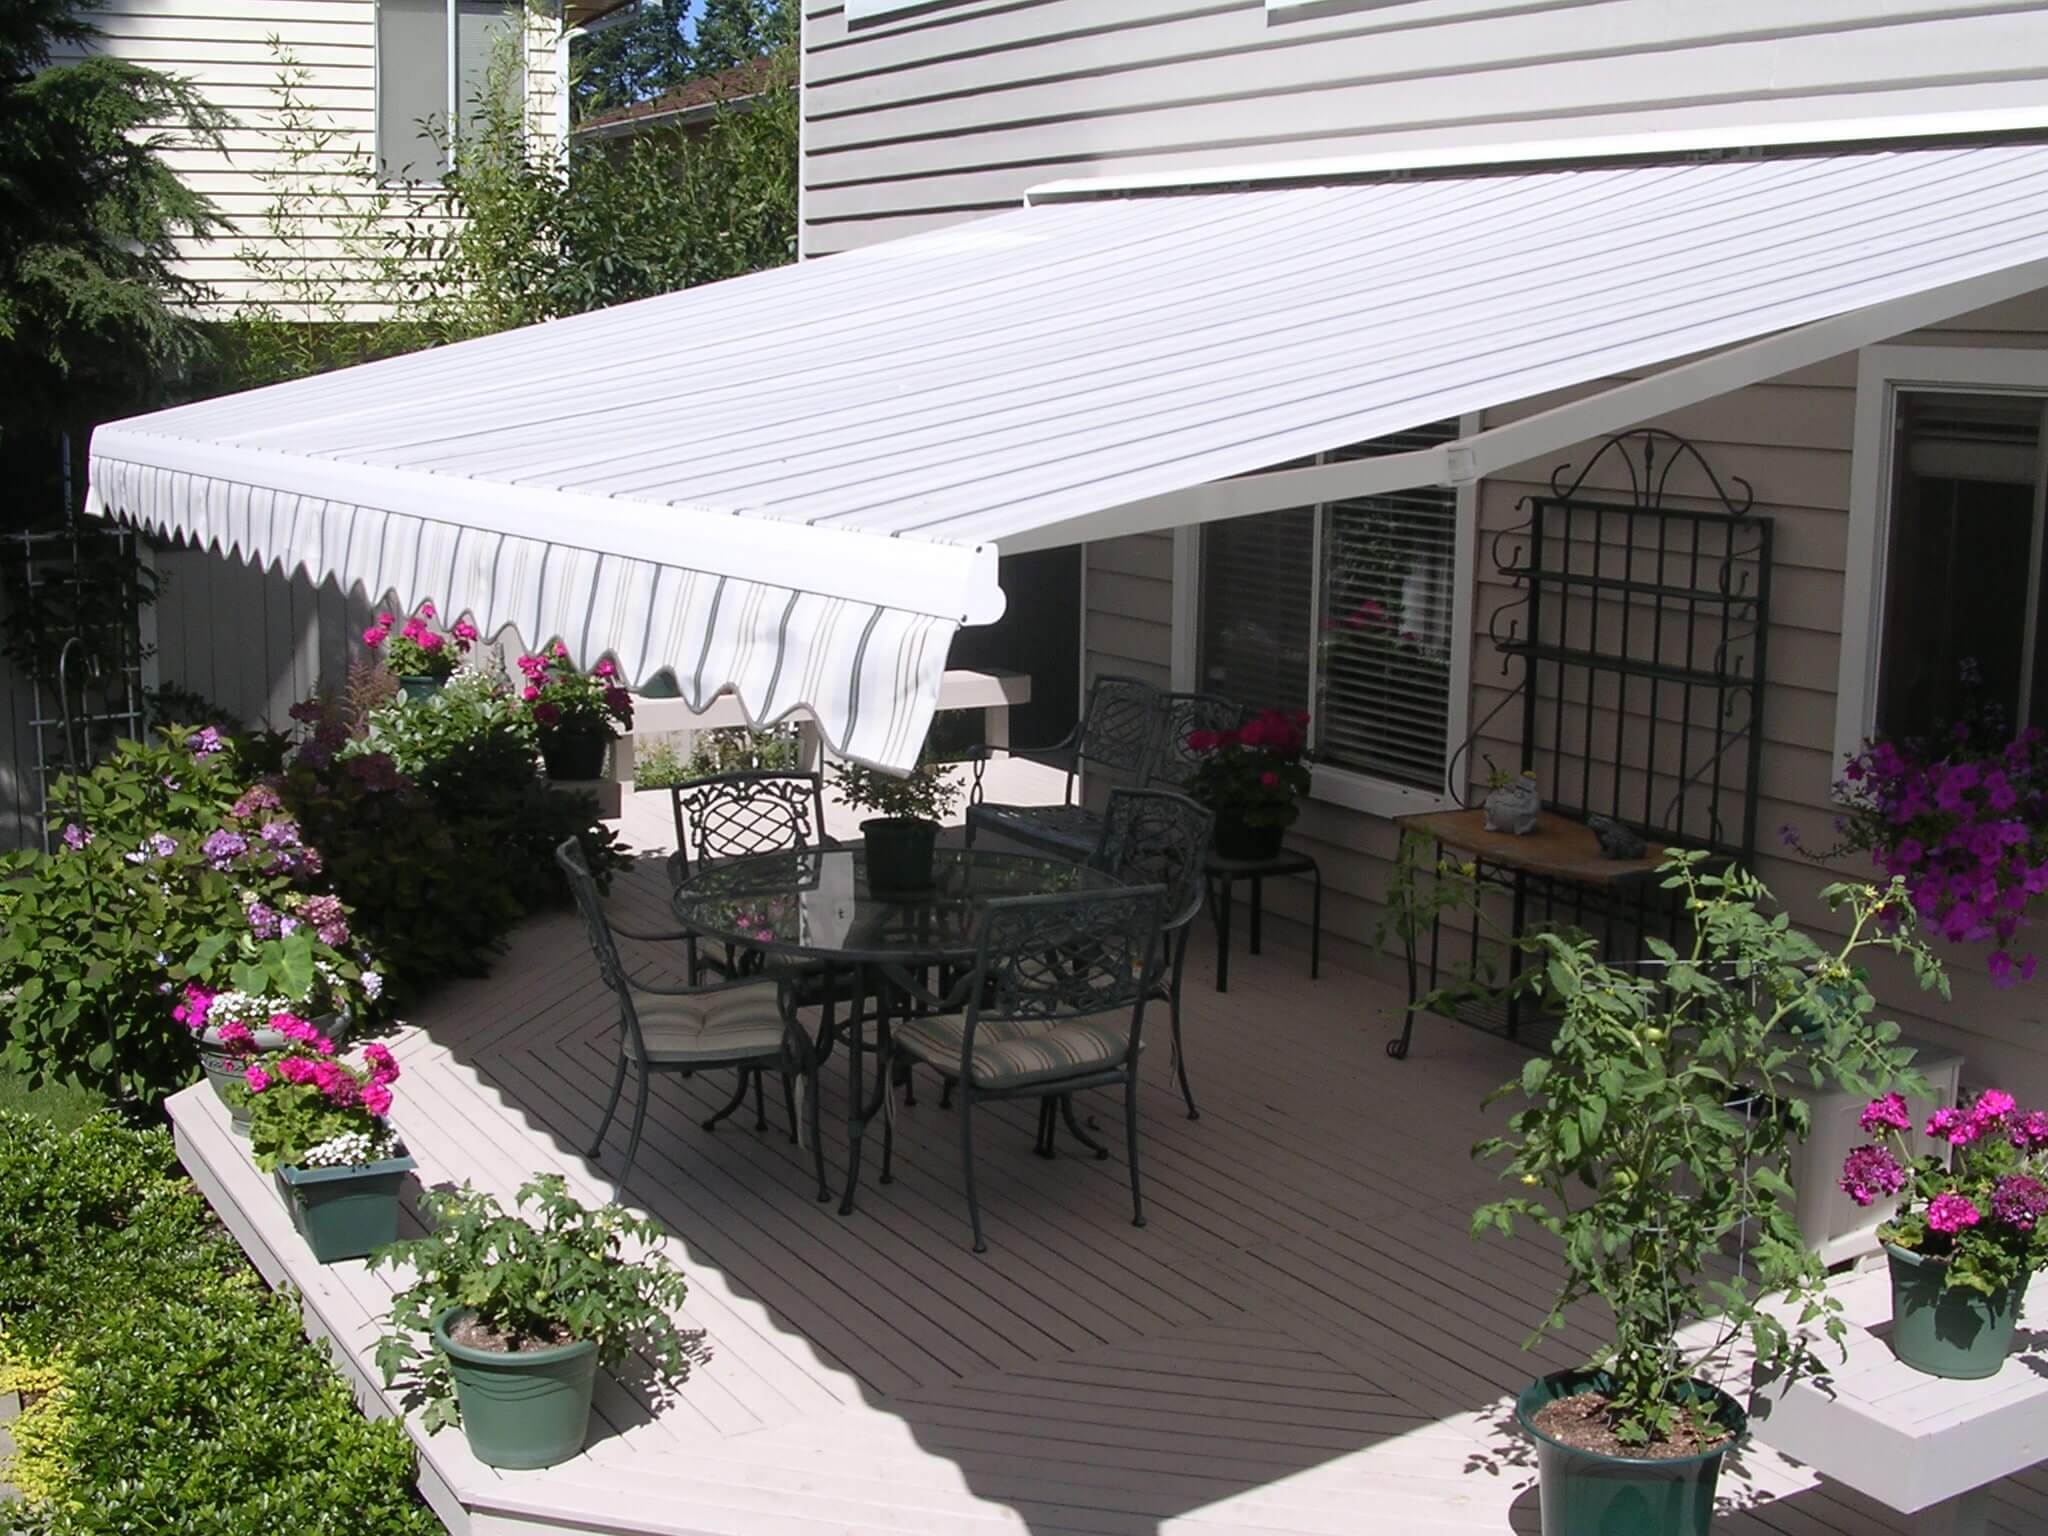 Diy Retractable Awnings Easy To Install Awnings Amp Parts